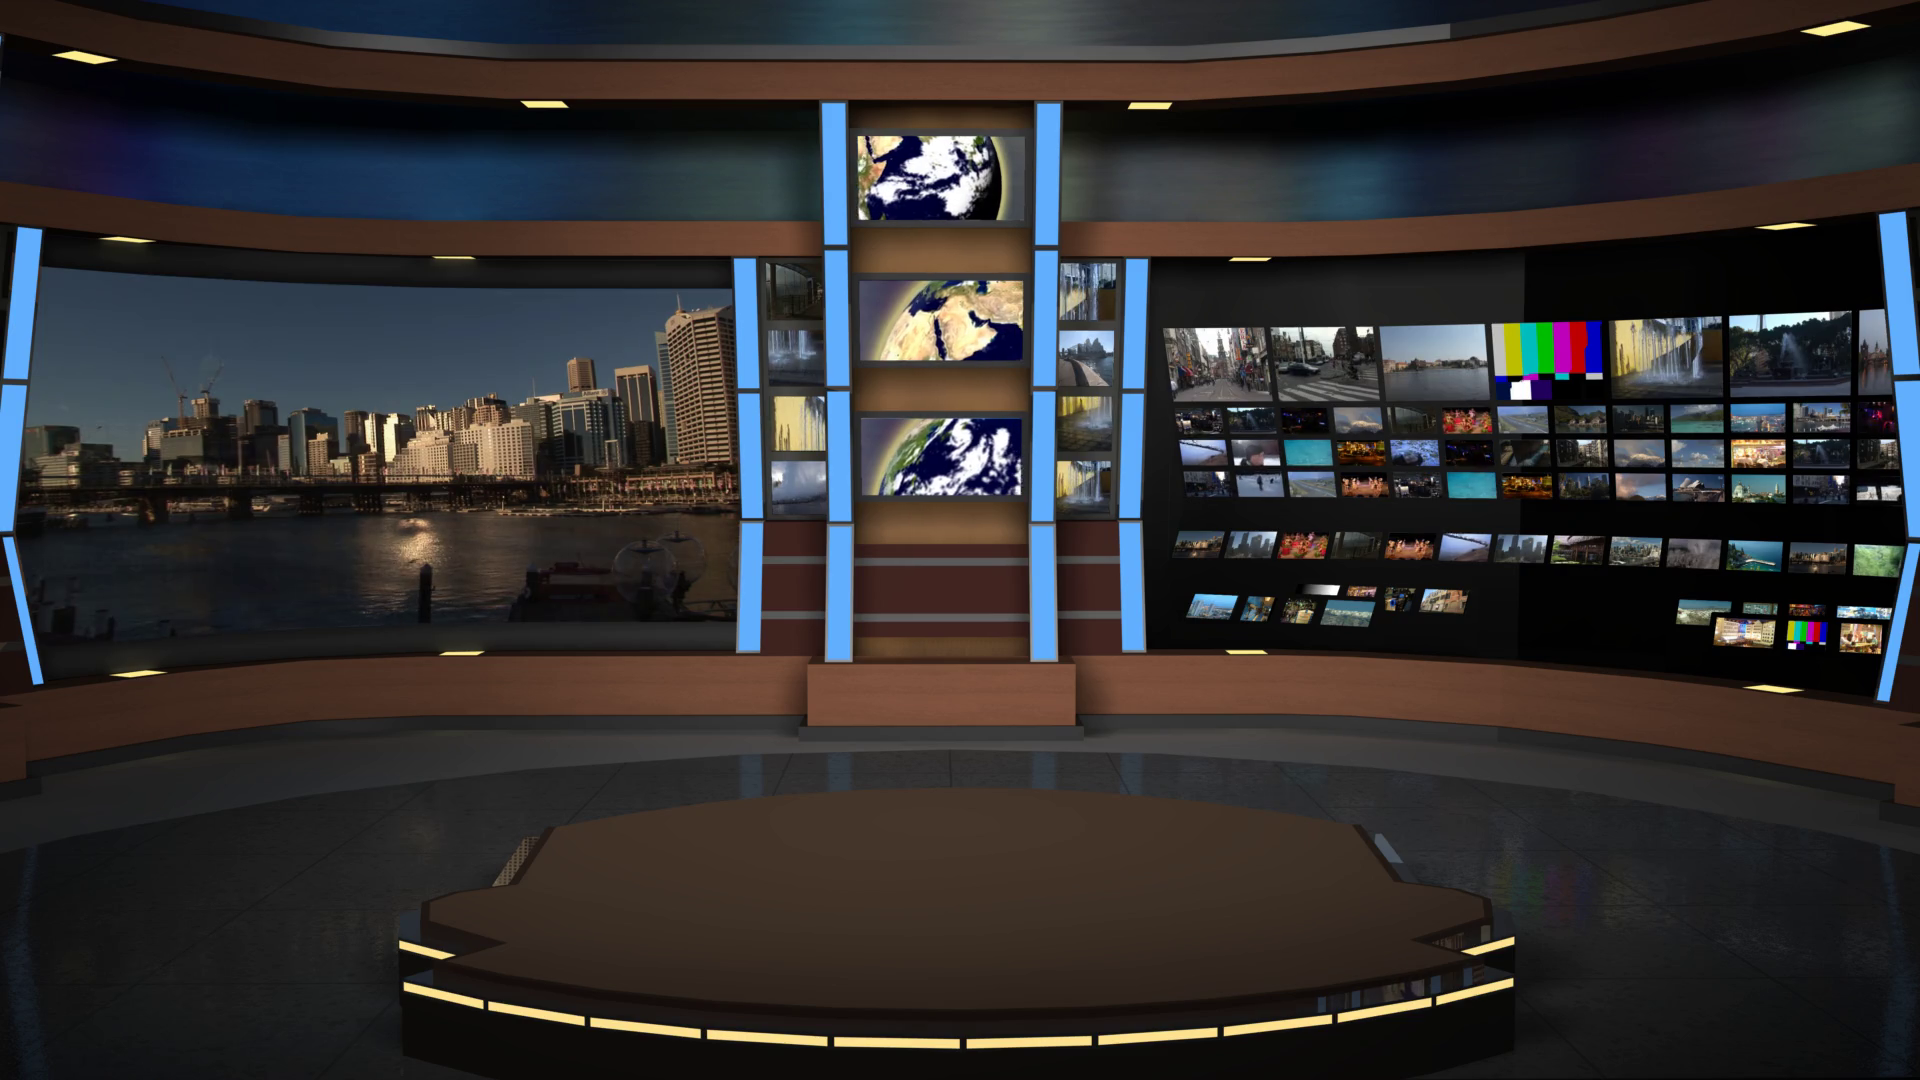 Animated Virtual Set Studio AnimSet 004 Wide Shot Broadcast News Desk with  Screens Motion Background.